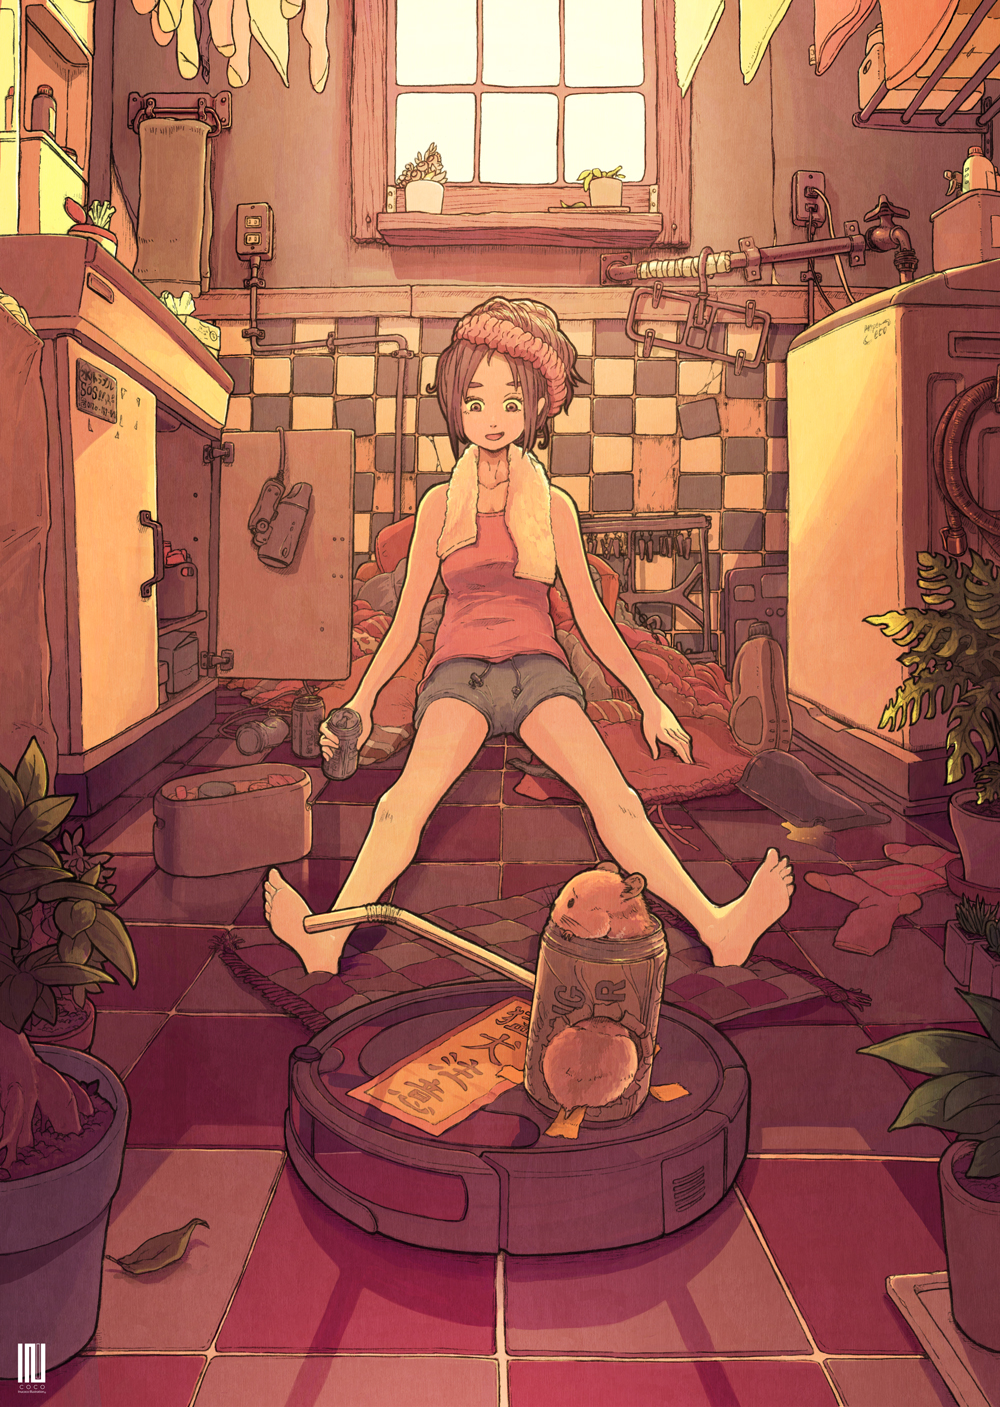 1girl bare_legs barefoot brown_eyes brown_hair cabinet can glowing grey_shorts highres holding holding_can inukoko leaf open_mouth original pink_tank_top pipe plant potted_plant reflection shorts sitting smile solo tank_top tile_floor tile_wall tiles towel wide_shot window